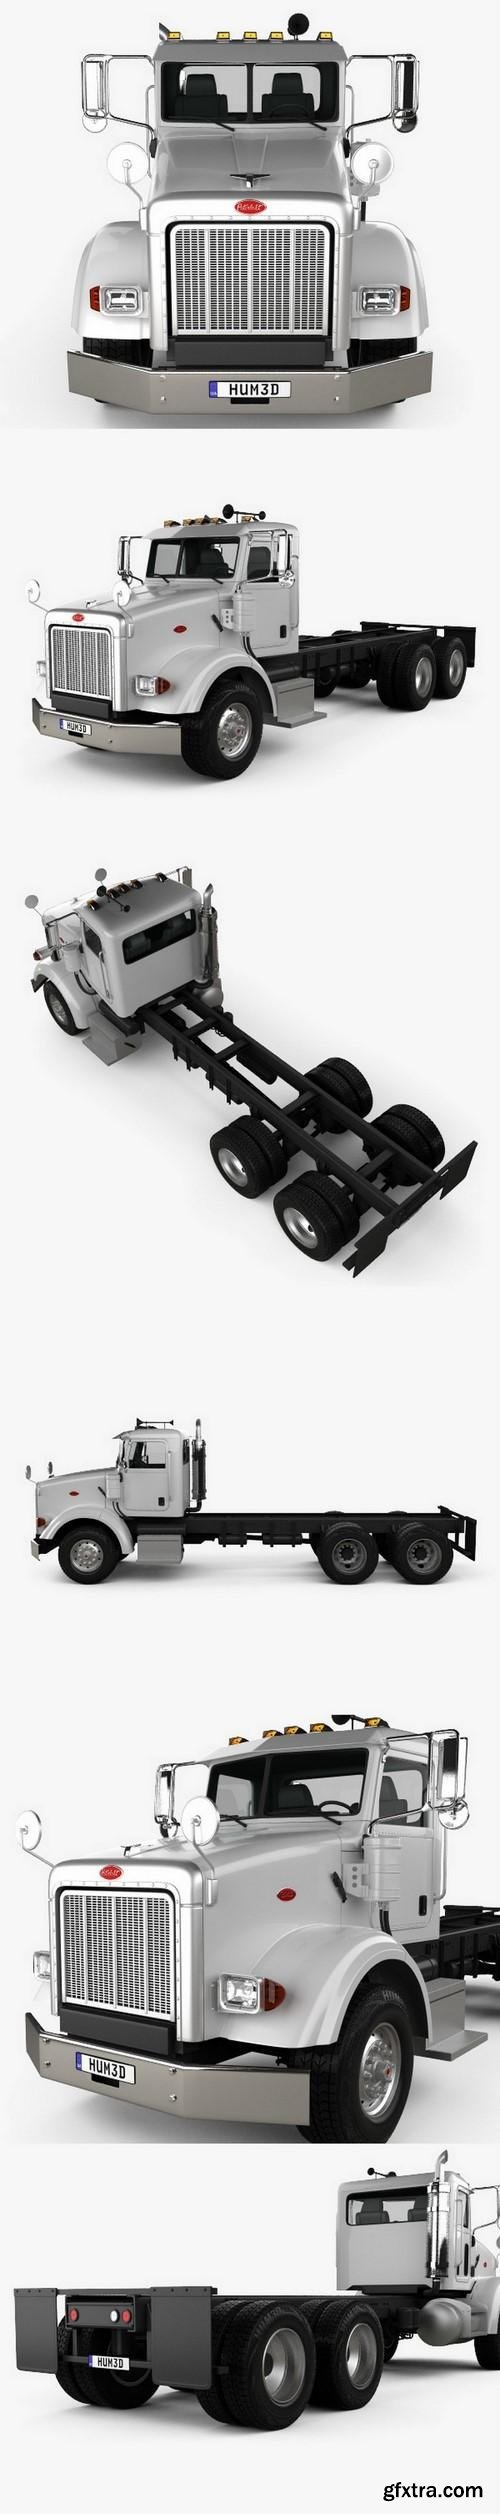 Peterbilt 357 DayCab Chassis Truck 2006 3D Model